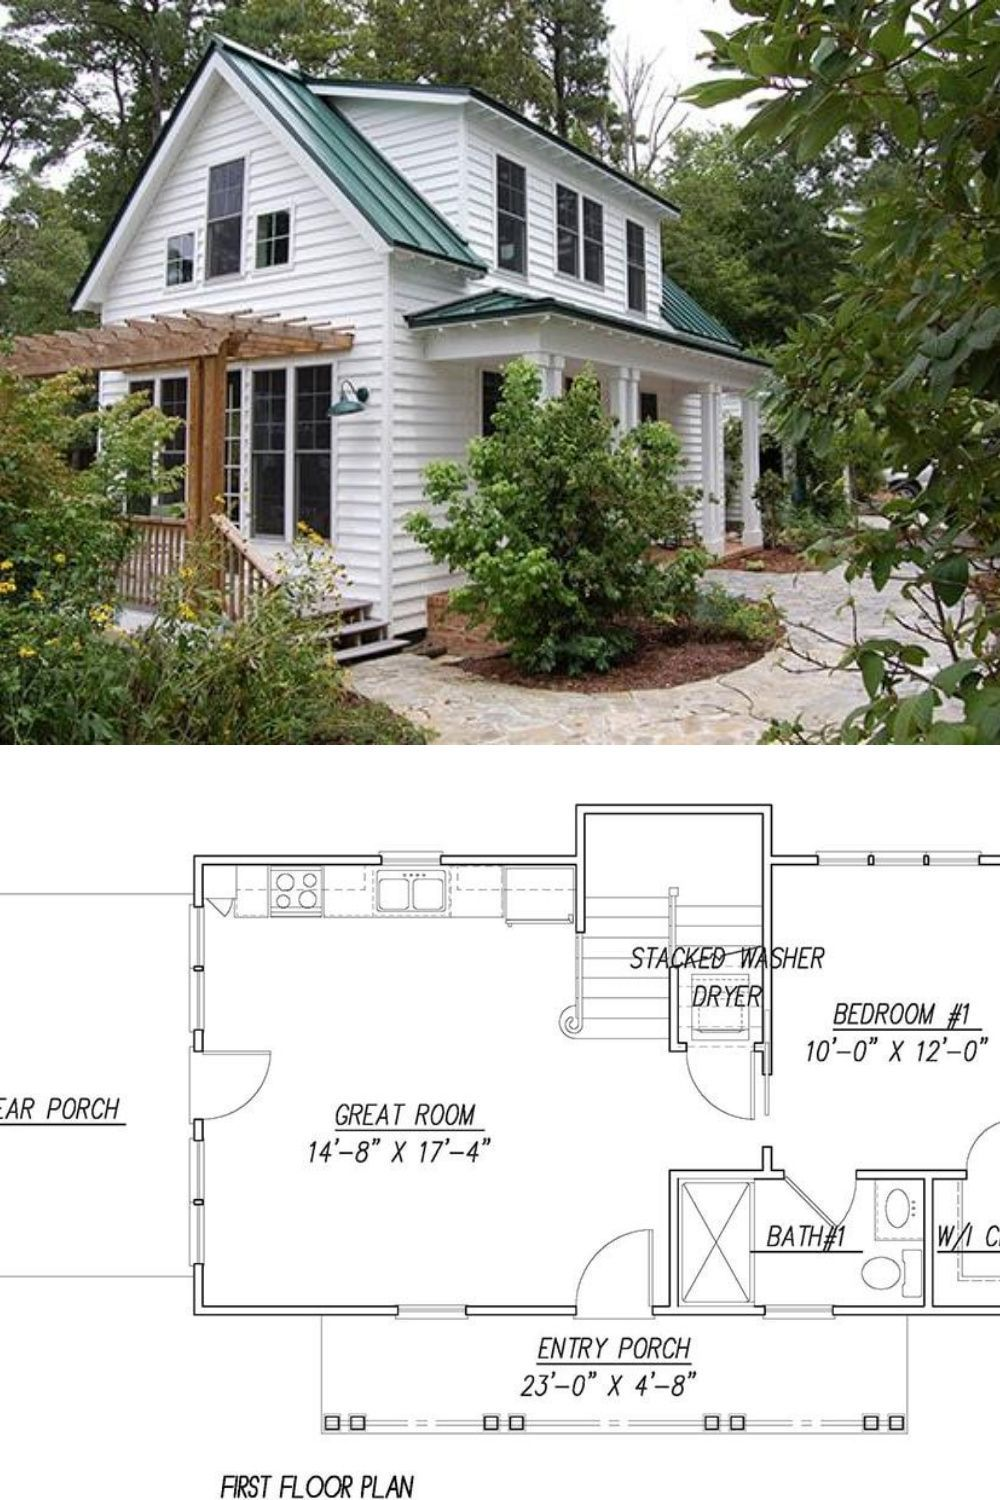 3 Bedroom Two Story Katrina Cottage For Corner Lot Floor Plan Cottage Bungalow House Plans Small Cottage House Plans Bungalow House Plans